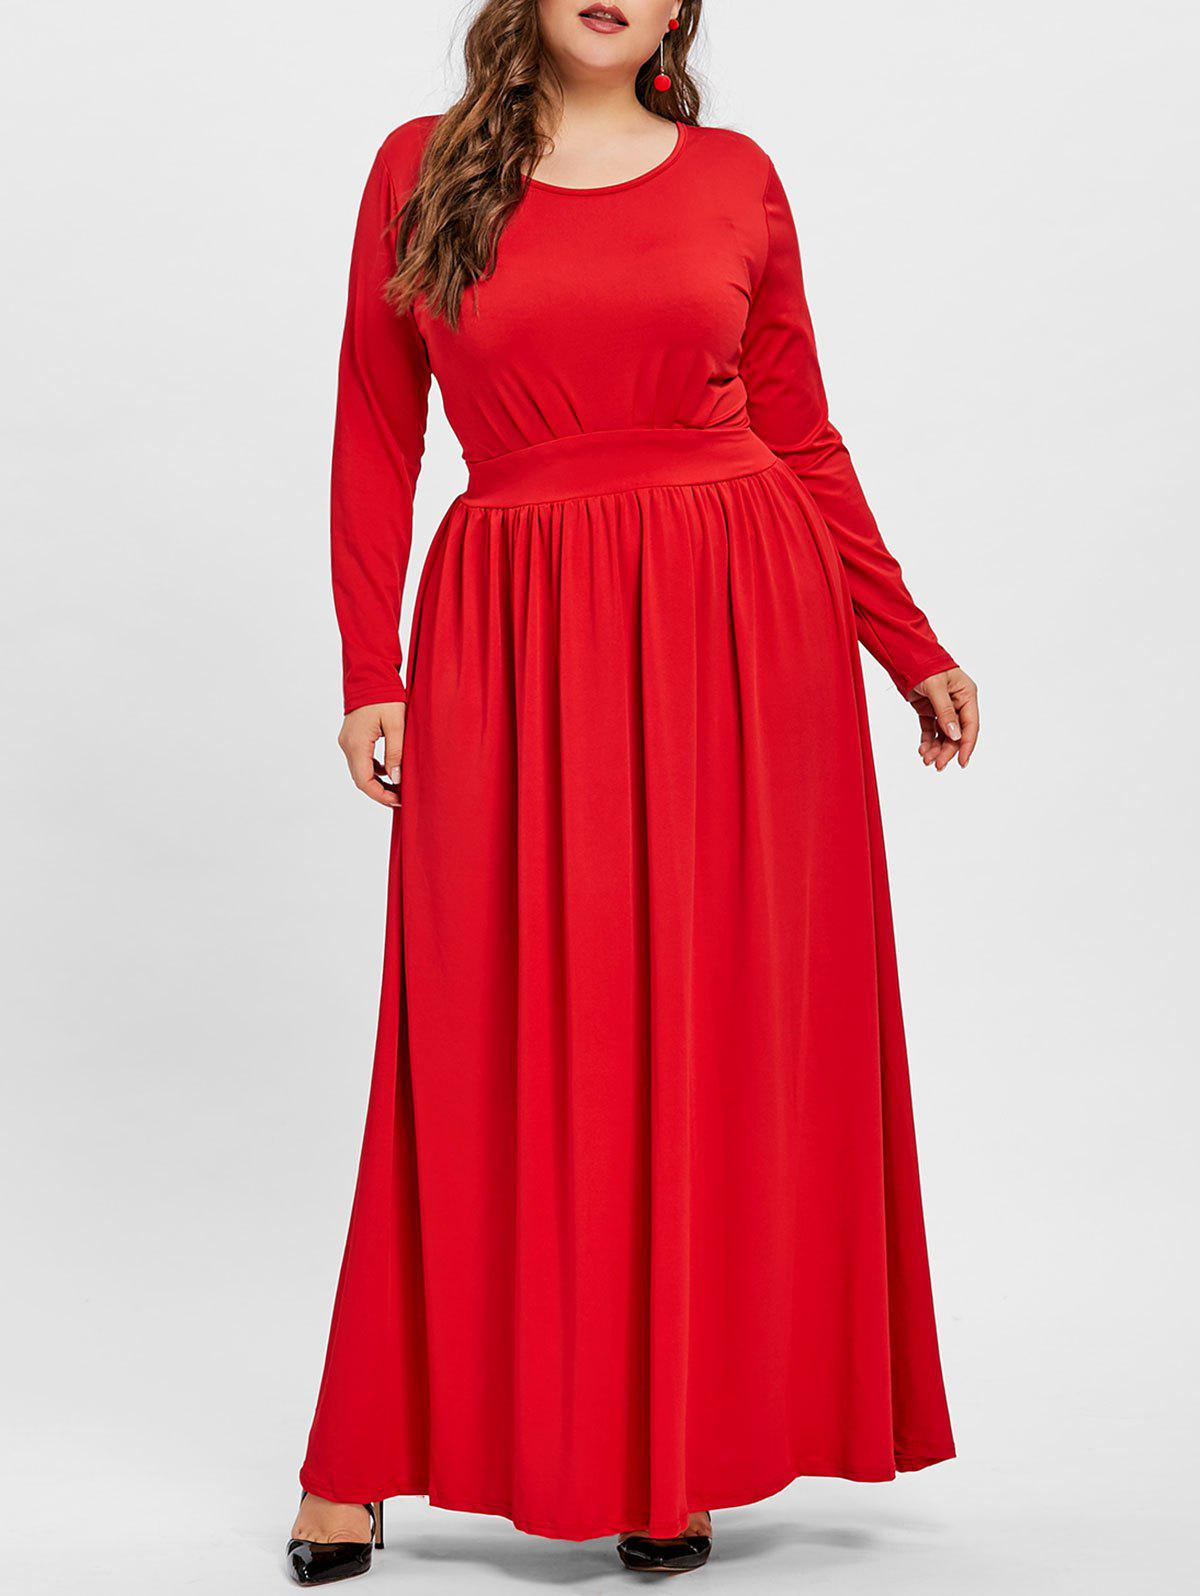 Chic Scoop Neck Plus Size Maxi Tunic Dress